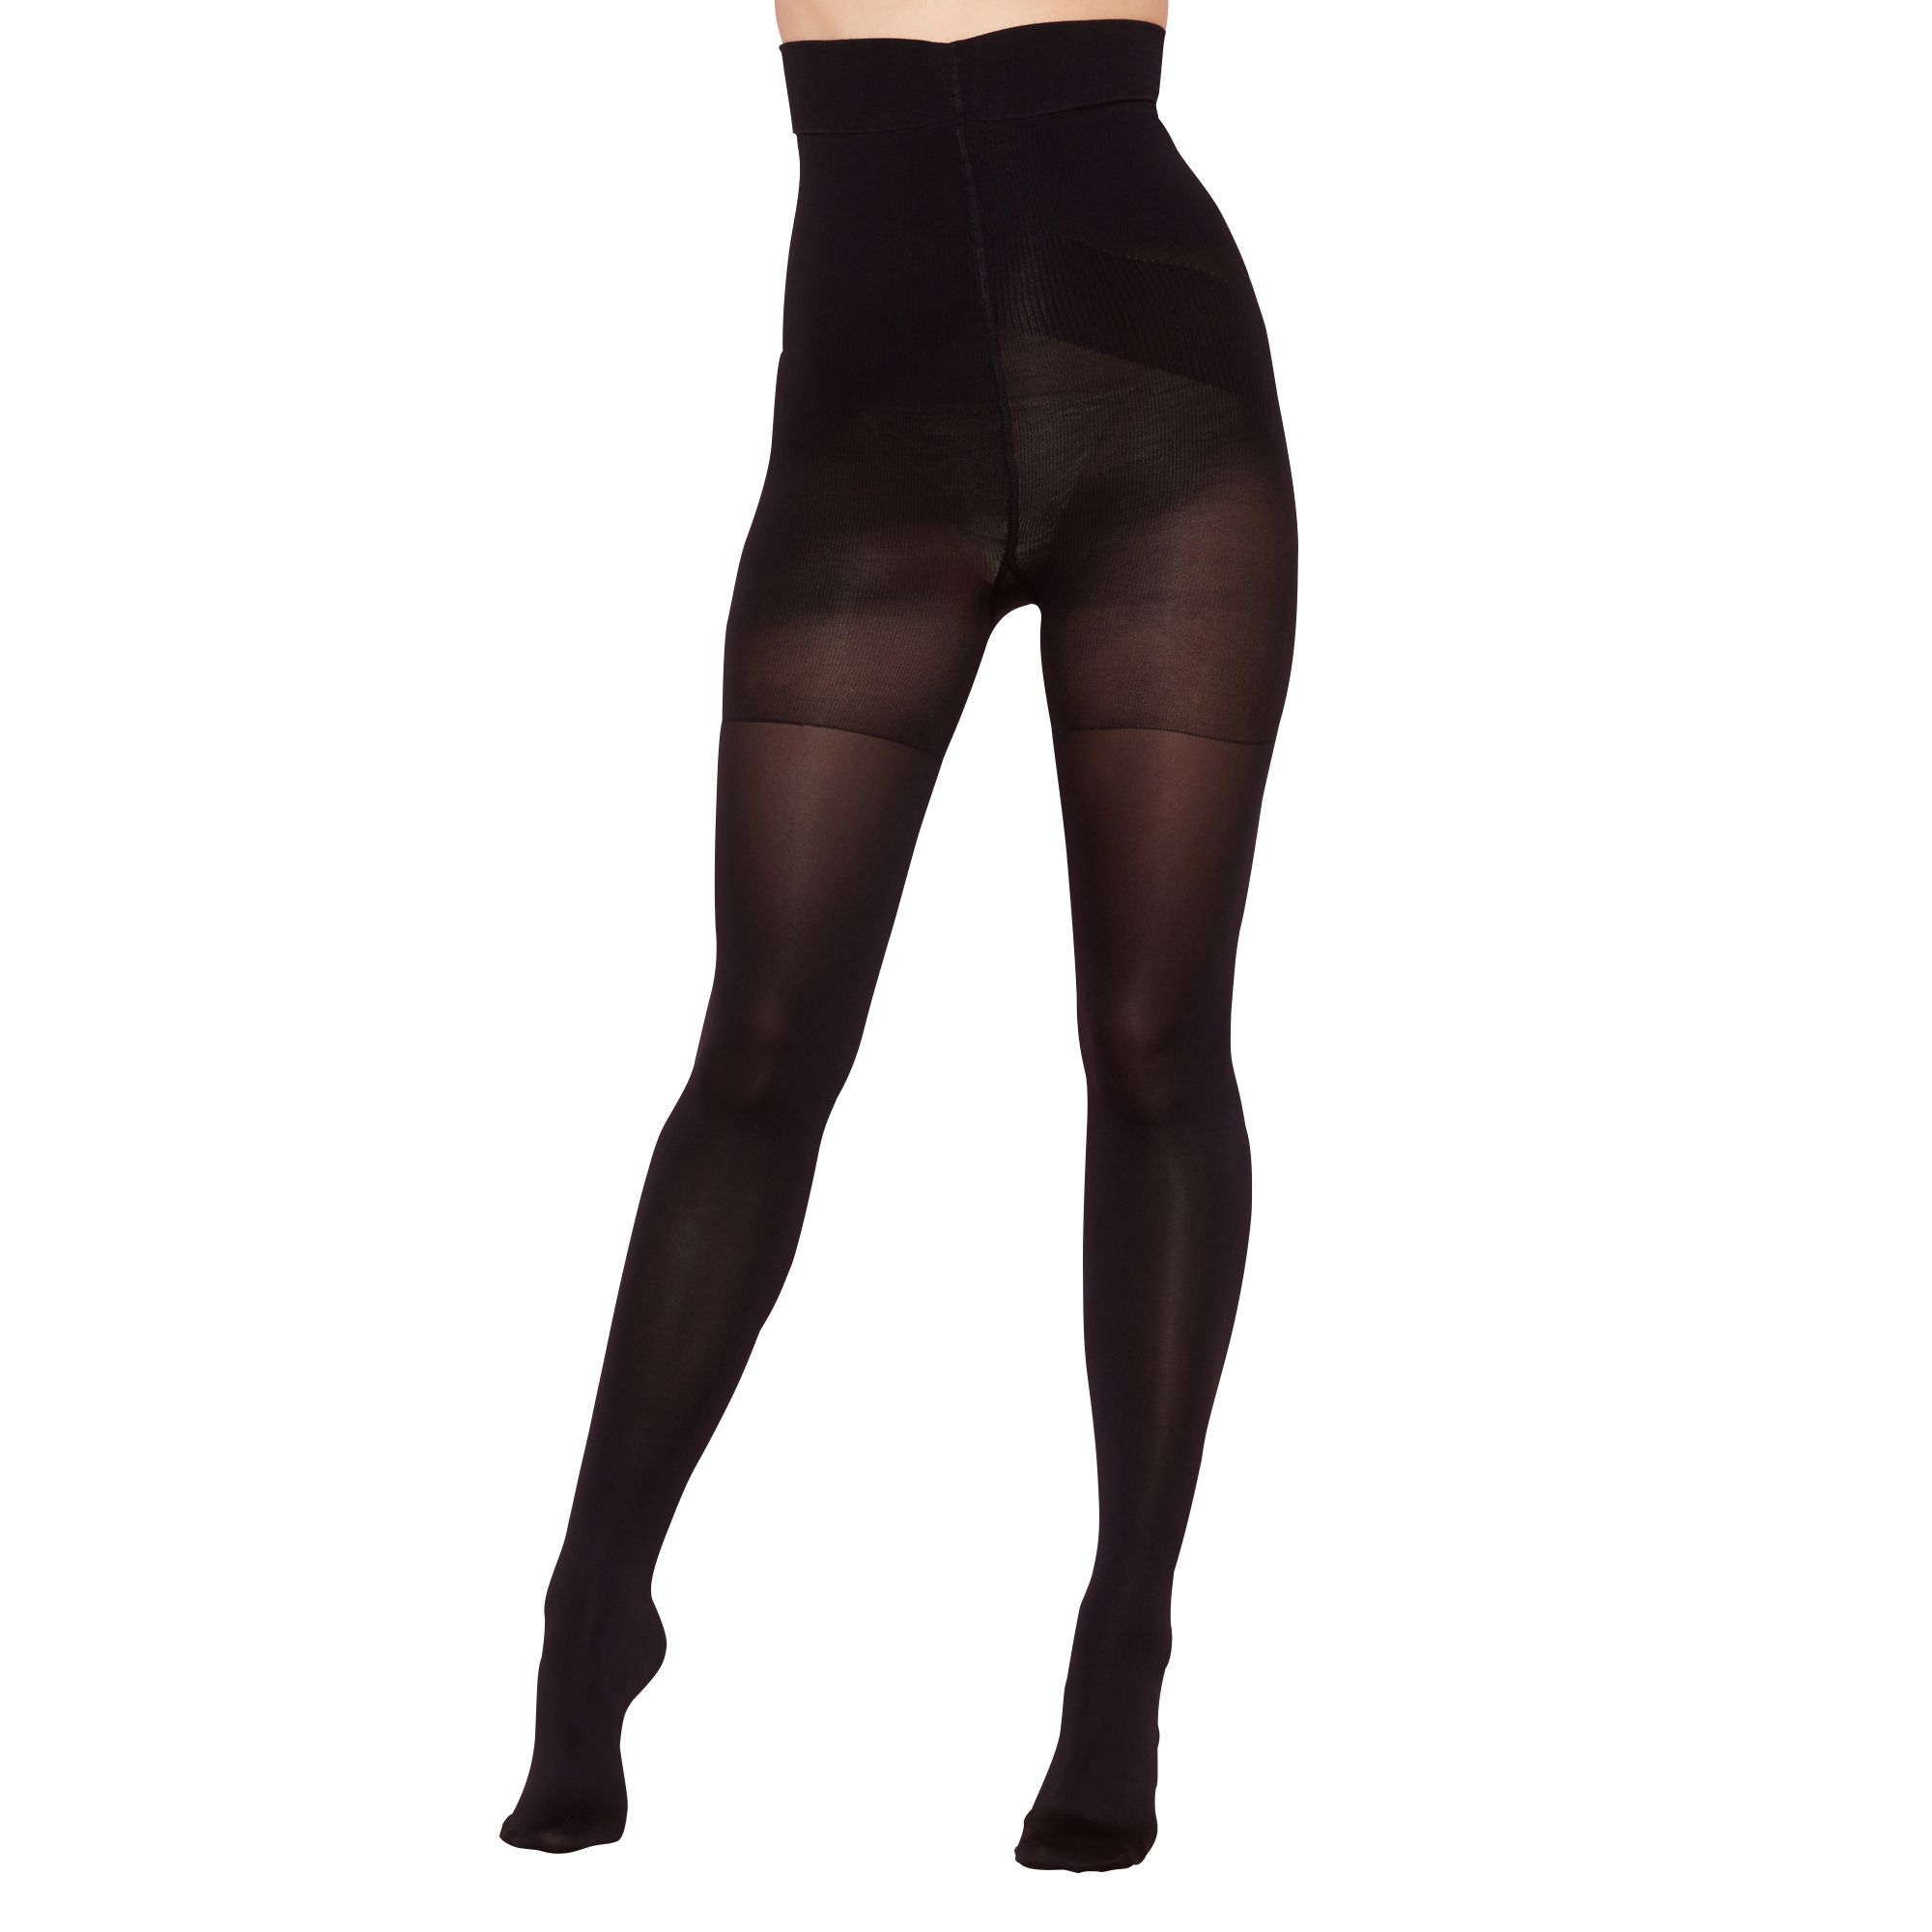 Wear bestselling Hanes Alive full support pantyhose -- and get comfortable support plus sheer beauty. Silky-sheer knit clings to your curves for sleek fit and flawless finish. Knit-in spandex gives your legs a lift--helps prevent leg fatigue so you can look and feel Alive!/5().